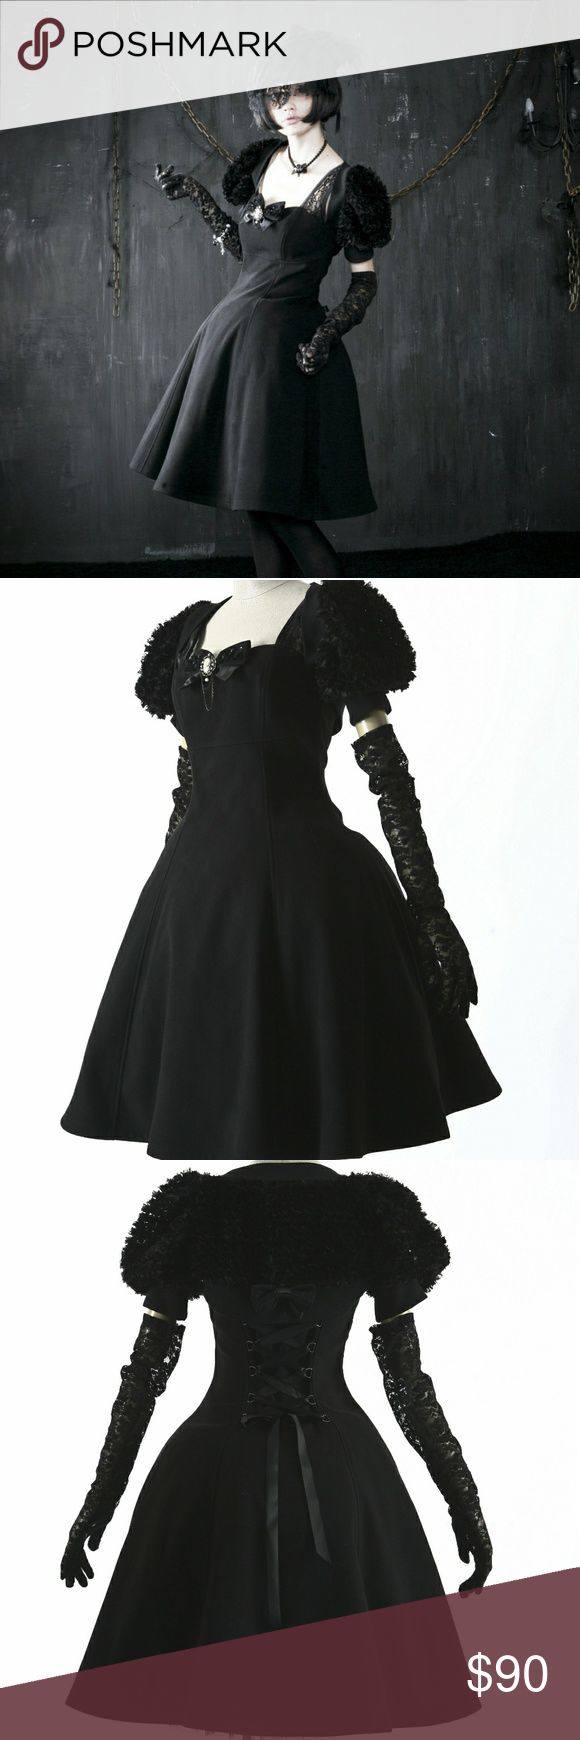 NEW Gothic Lolita Doll Dress Harajuku Goth Anime A perfect blend of sweetness an...